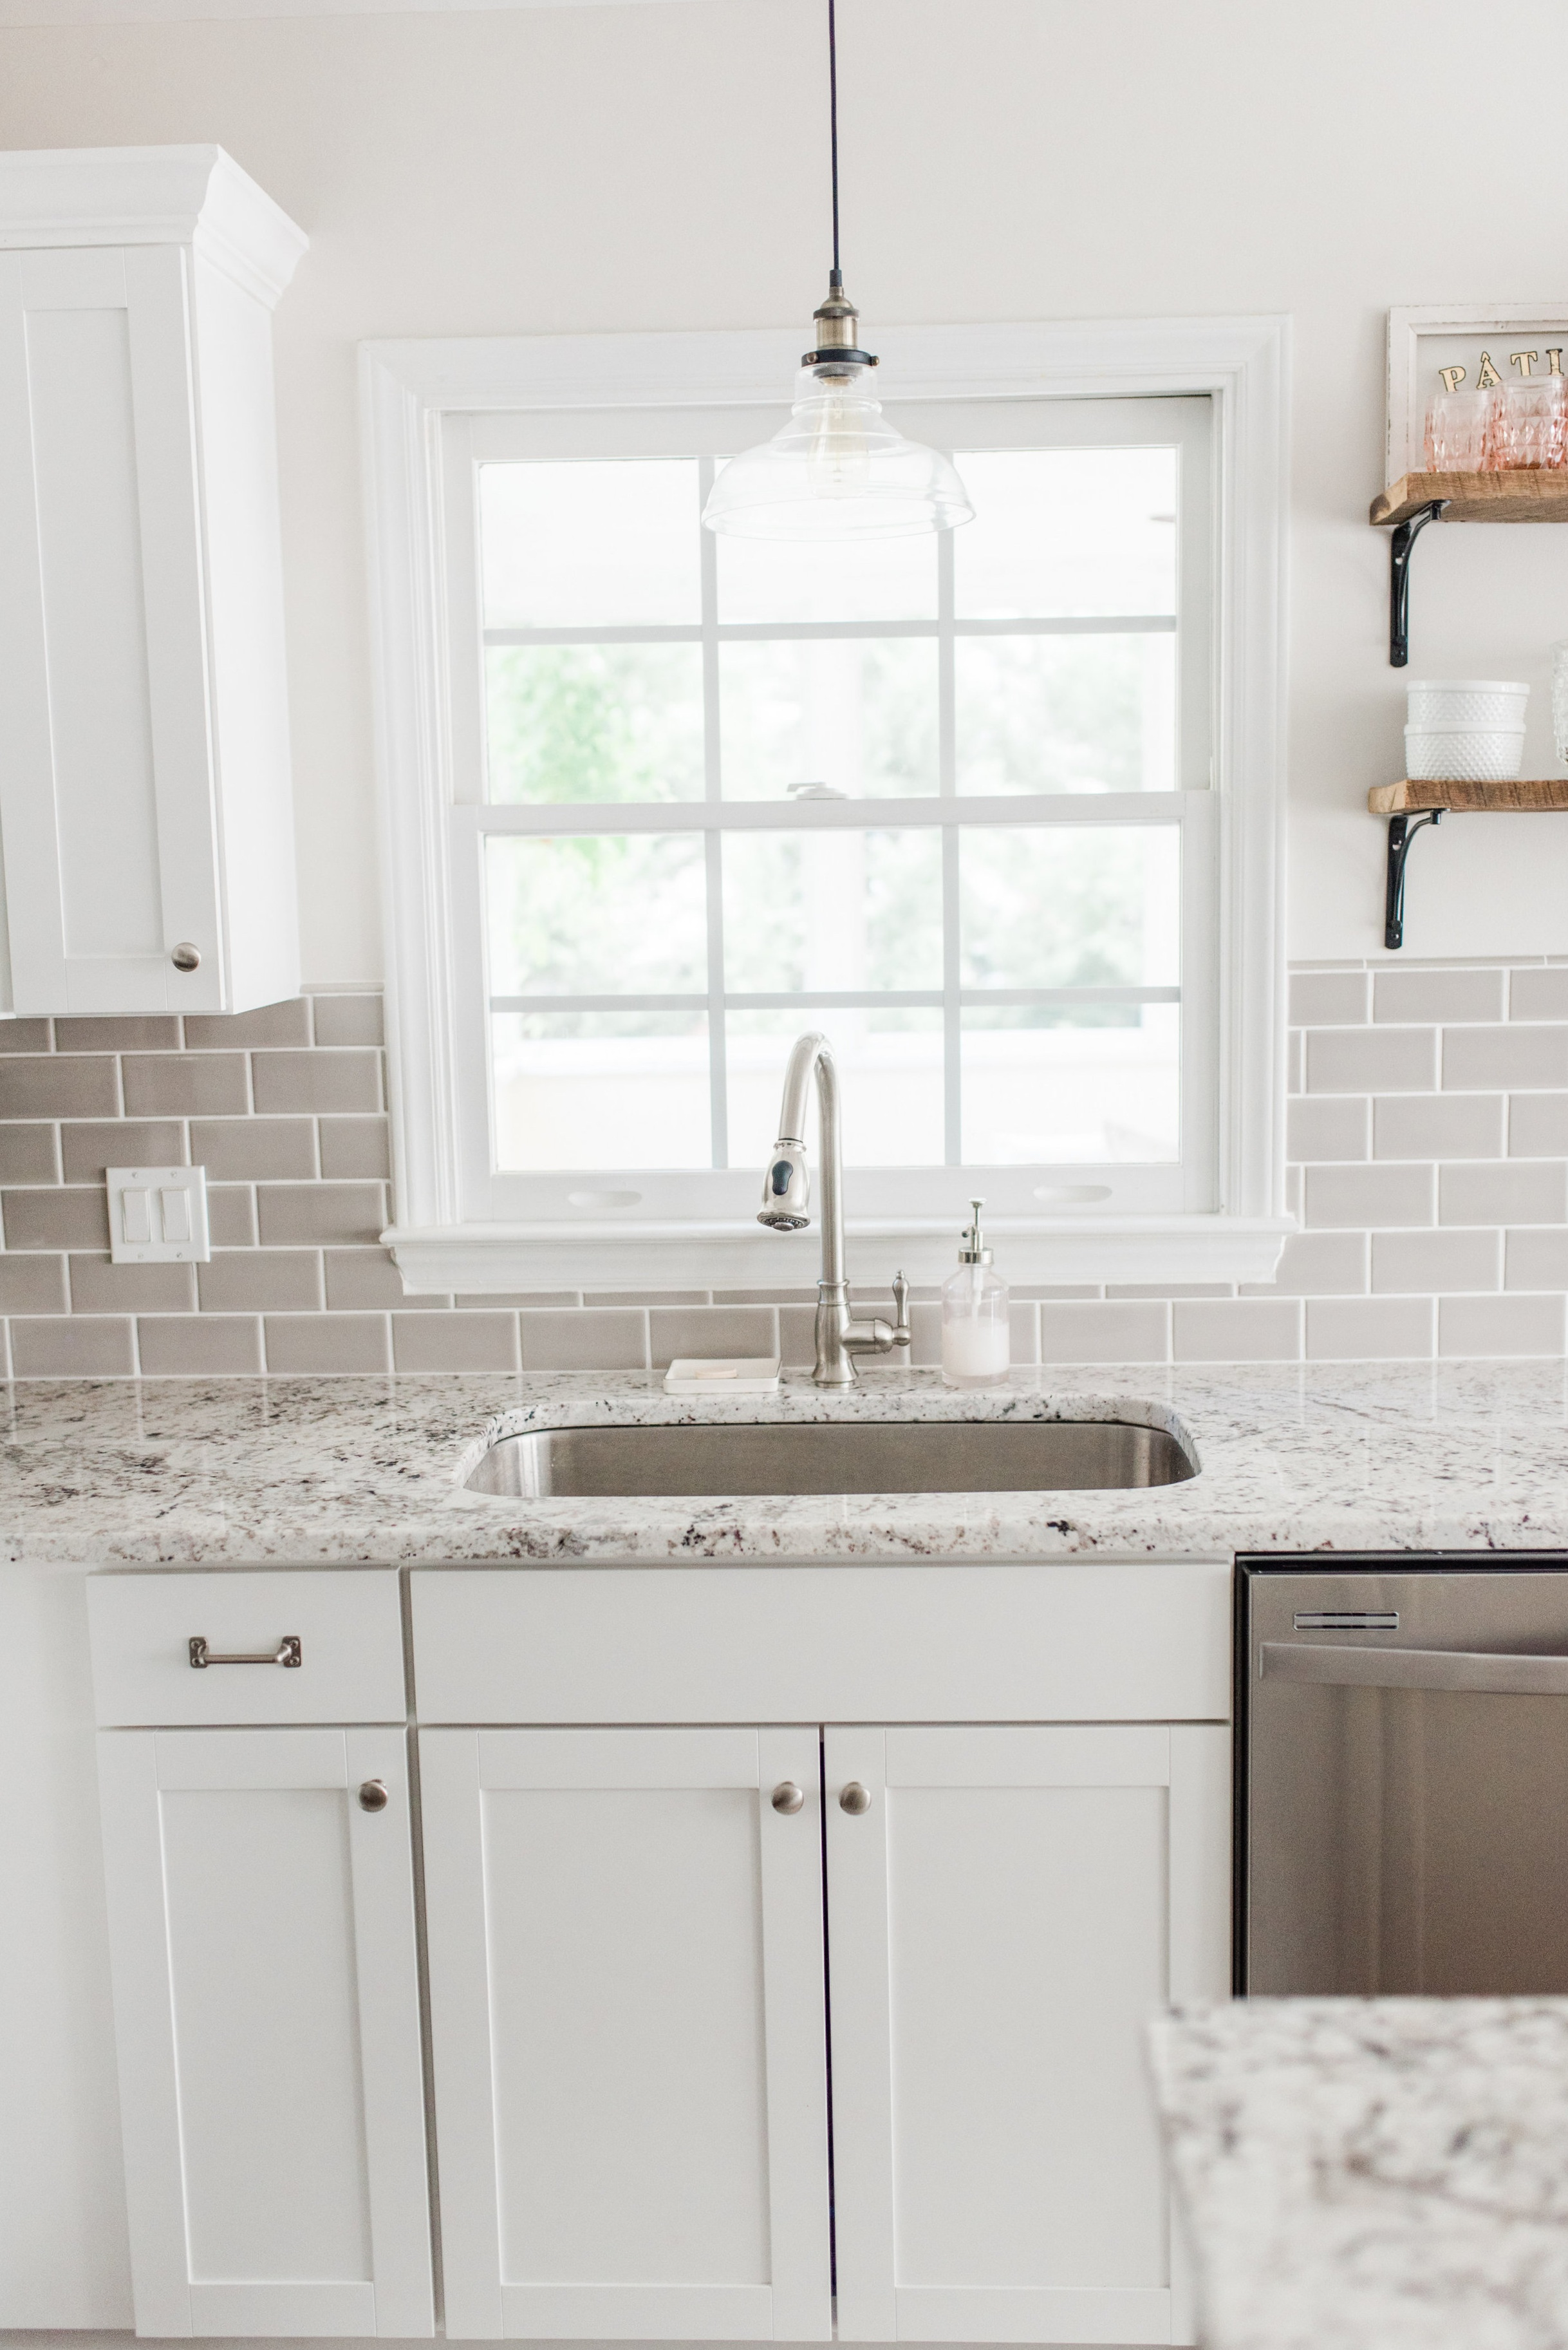 Lowe S Stock Cabinets Review Diamond Now Arcadia White Shaker Cabinets Elizabeth Burns Design Raleigh Nc Interior Designer